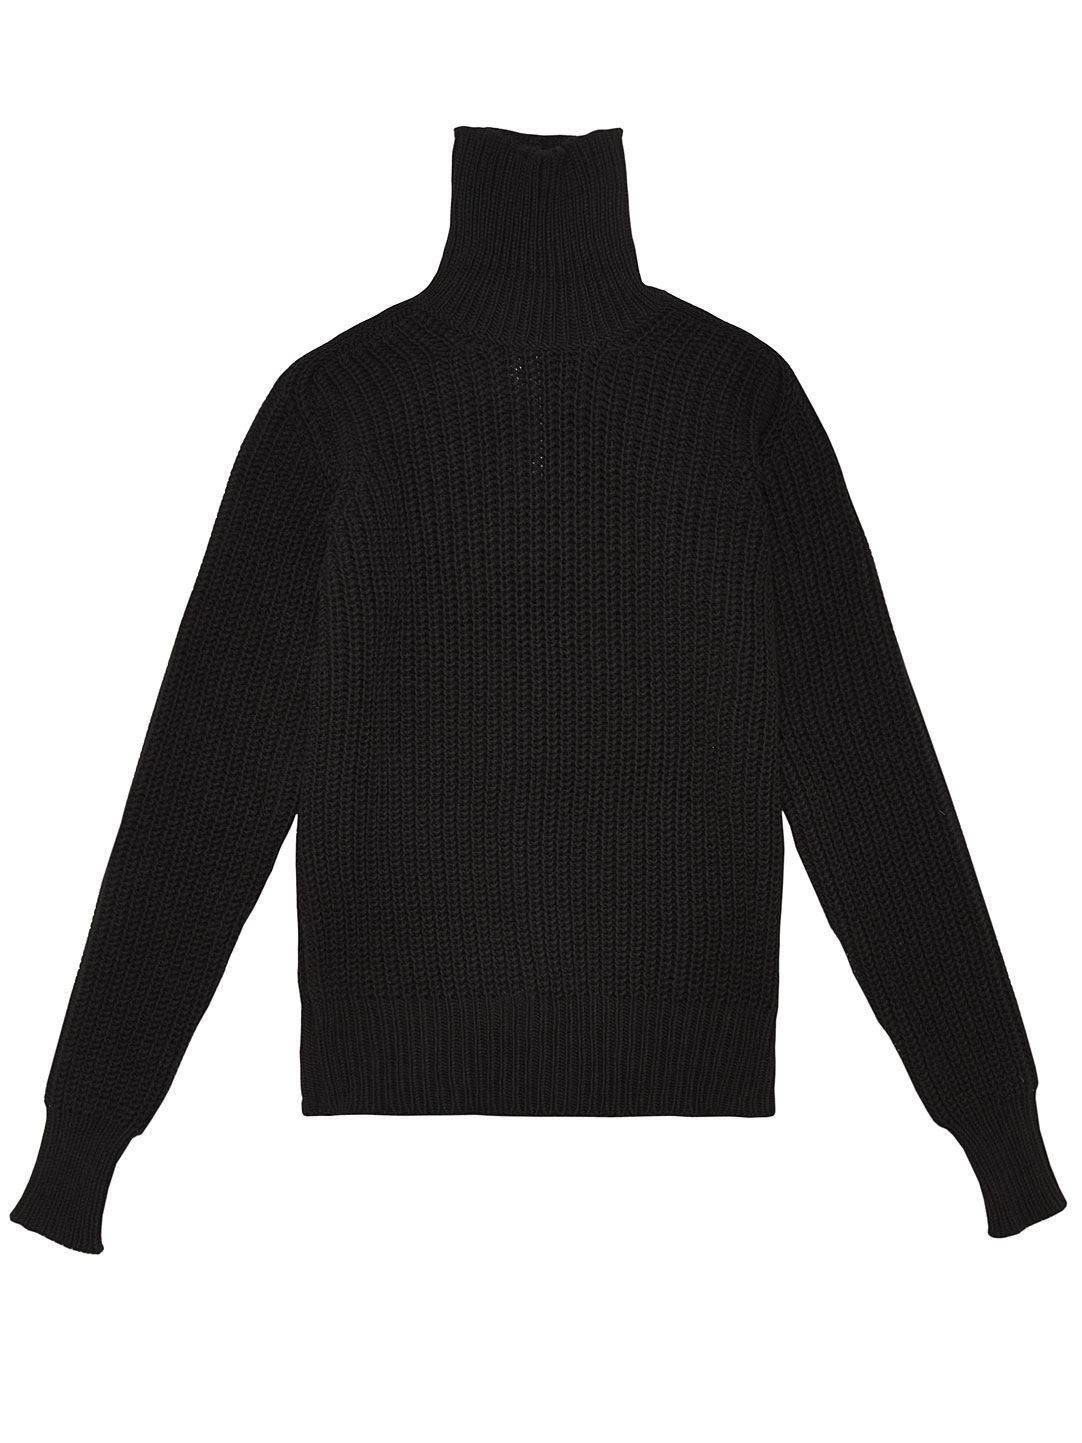 Rick owens Mens High Neck Sweater in Black for Men | Lyst